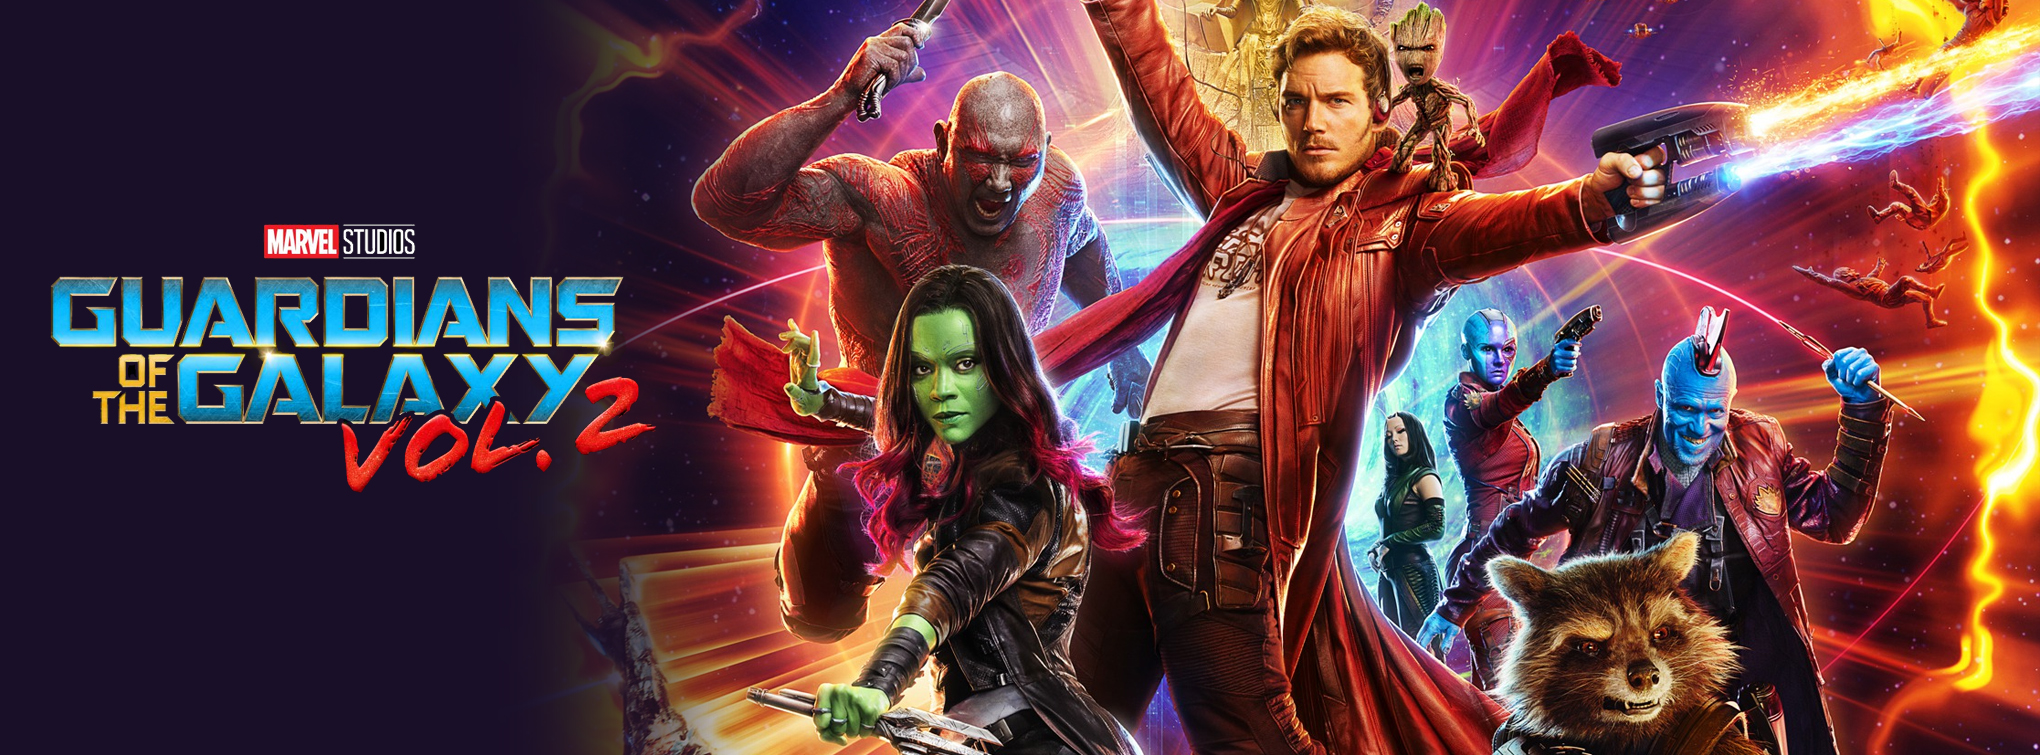 Guardians of the Galaxy Vol. 2 premieres everywhere Thursday, May 4! Tickets on sale now!